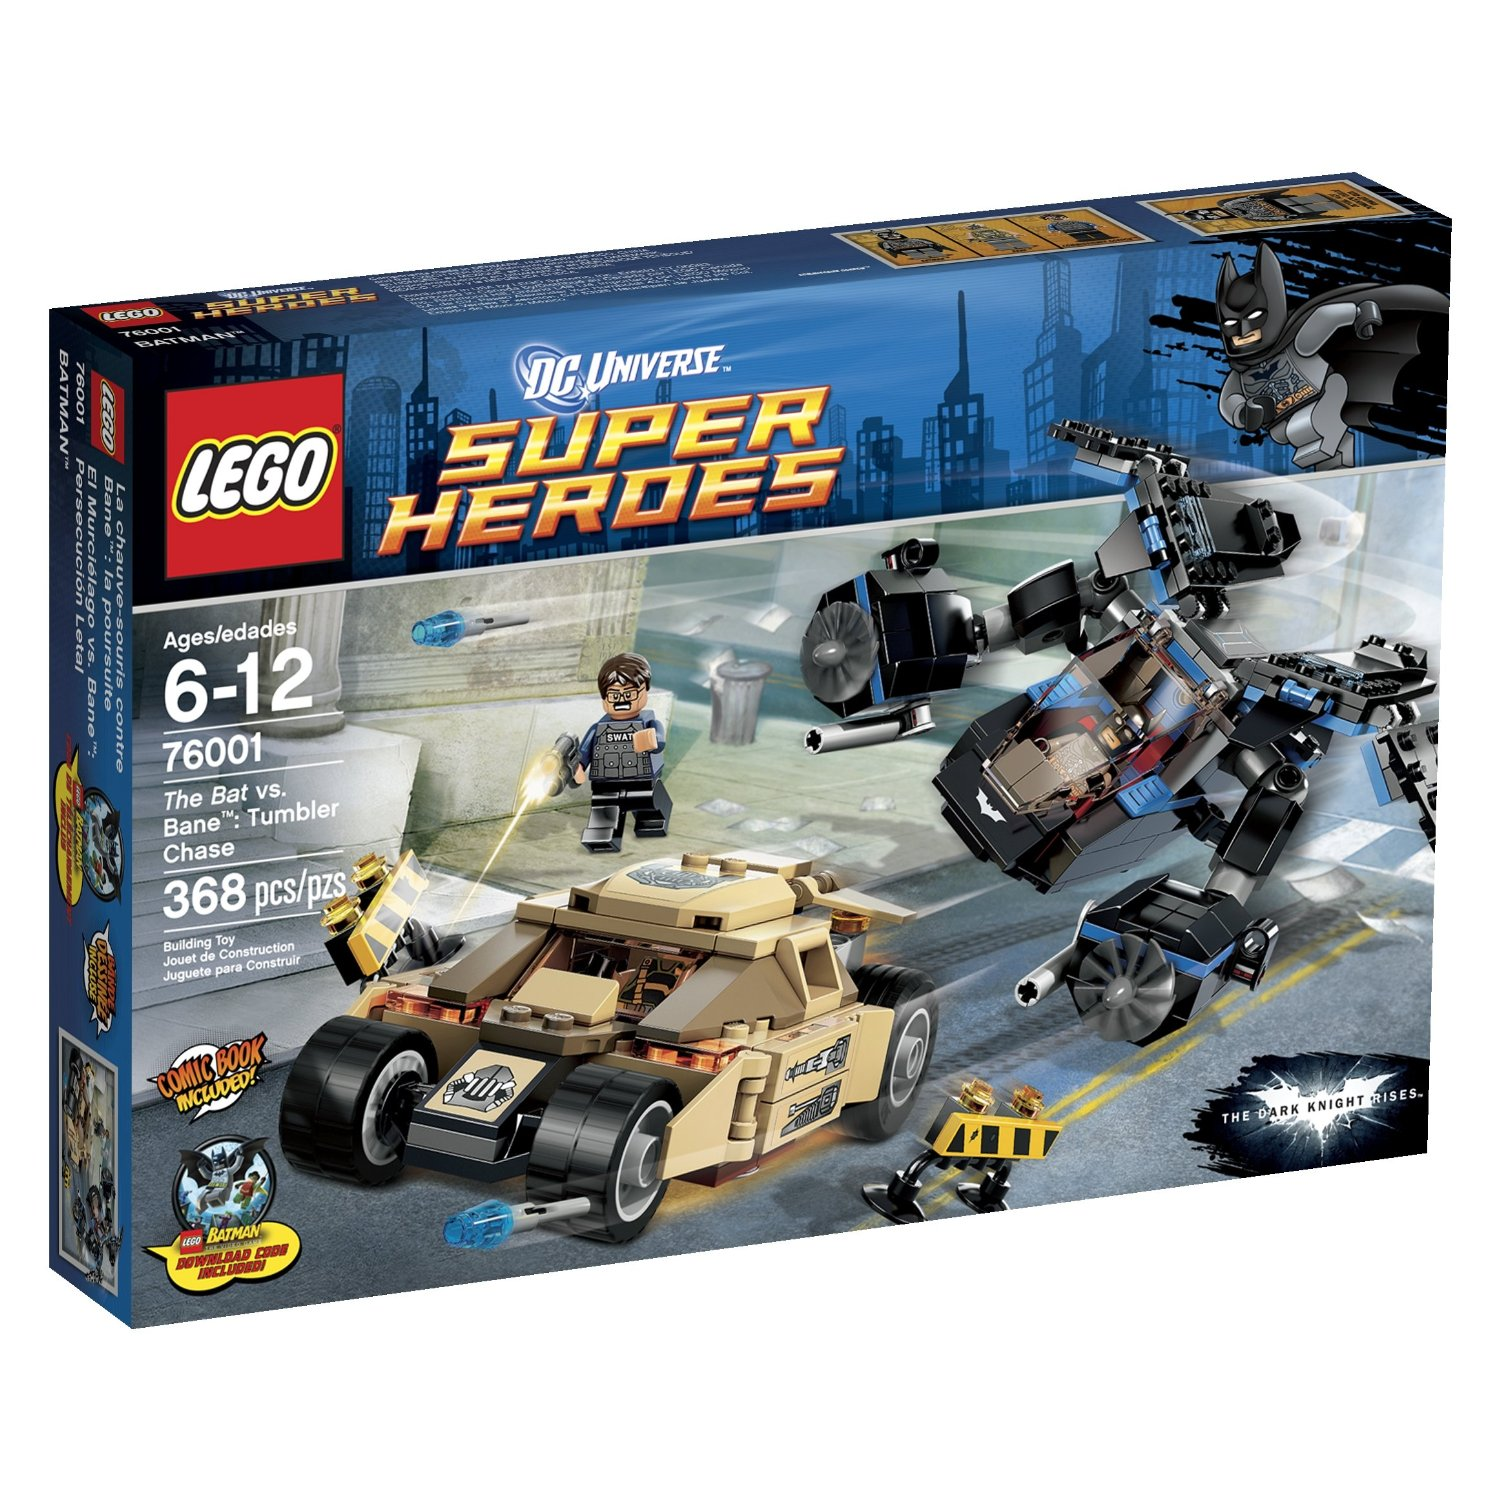 Lego marvel superheroes spider cycle chase 76004 price 19 99